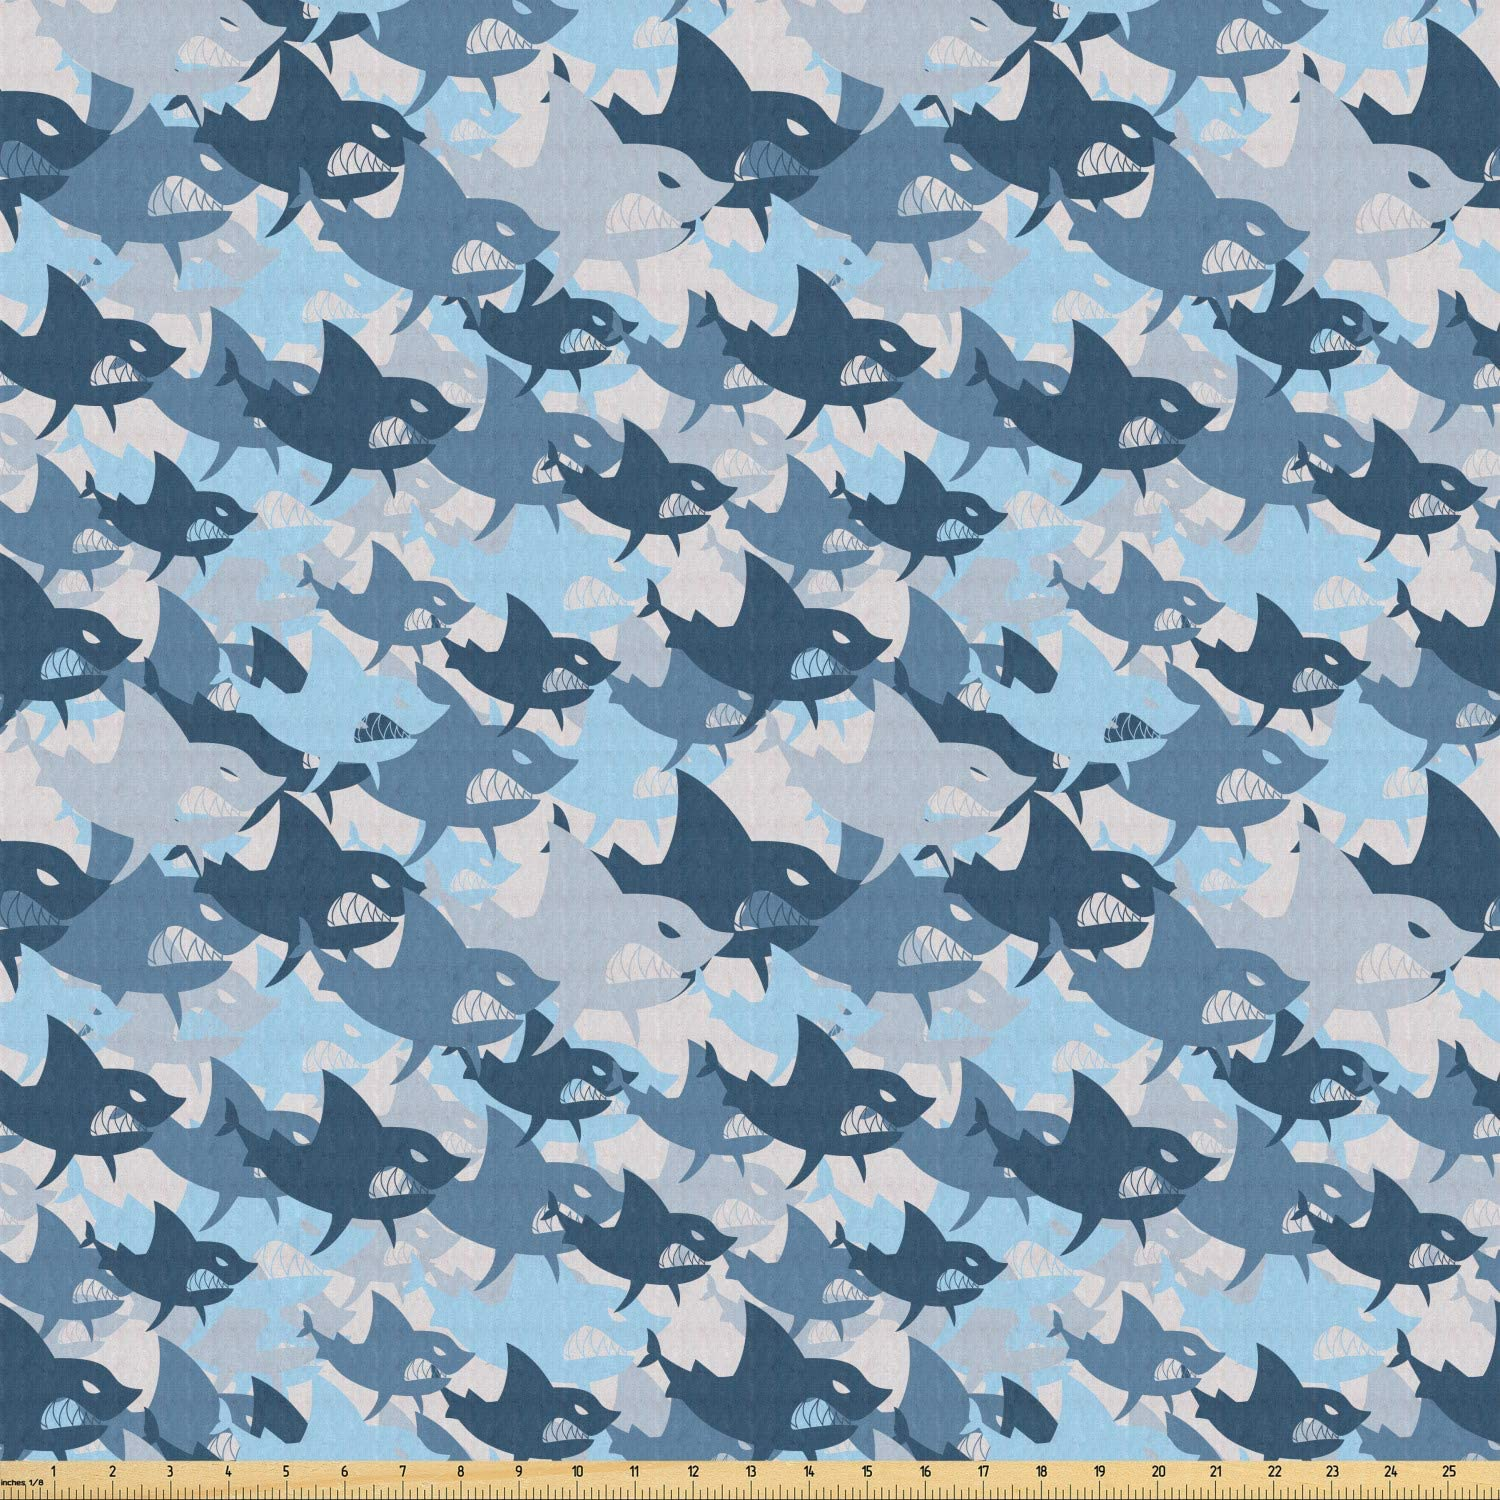 Lunarable Sea Animals Fabric by The Yard, Camouflage Pattern with Aggressive Shark Fishes Scary Marine Predators, Stretch Knit Fabric for Clothing Sewing and Arts Crafts, 1 Yard, Blue Grey